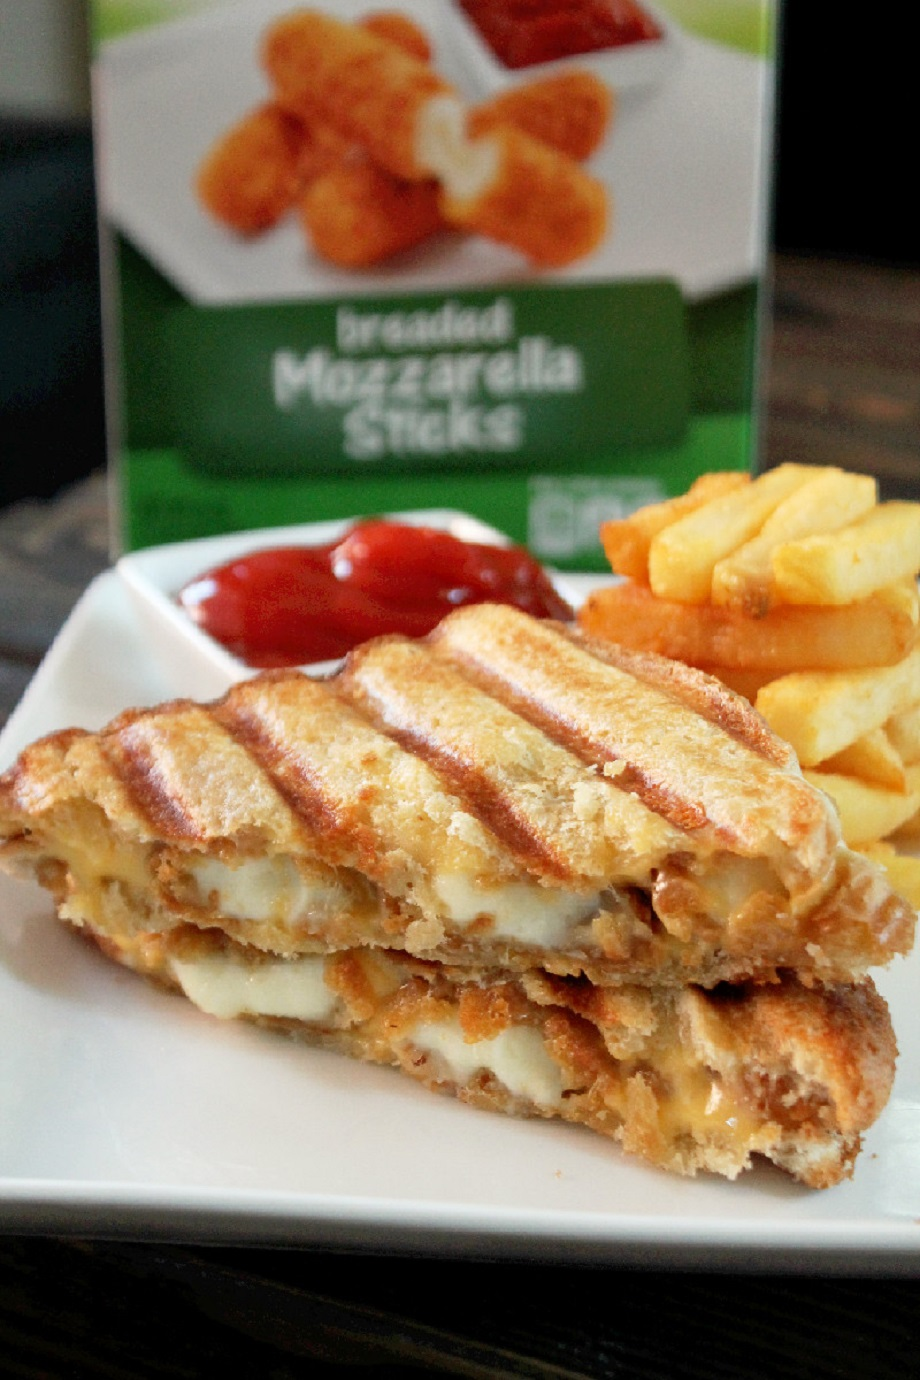 Mozzarella Sticks Grilled Cheese Sandwich - Creole Contessa